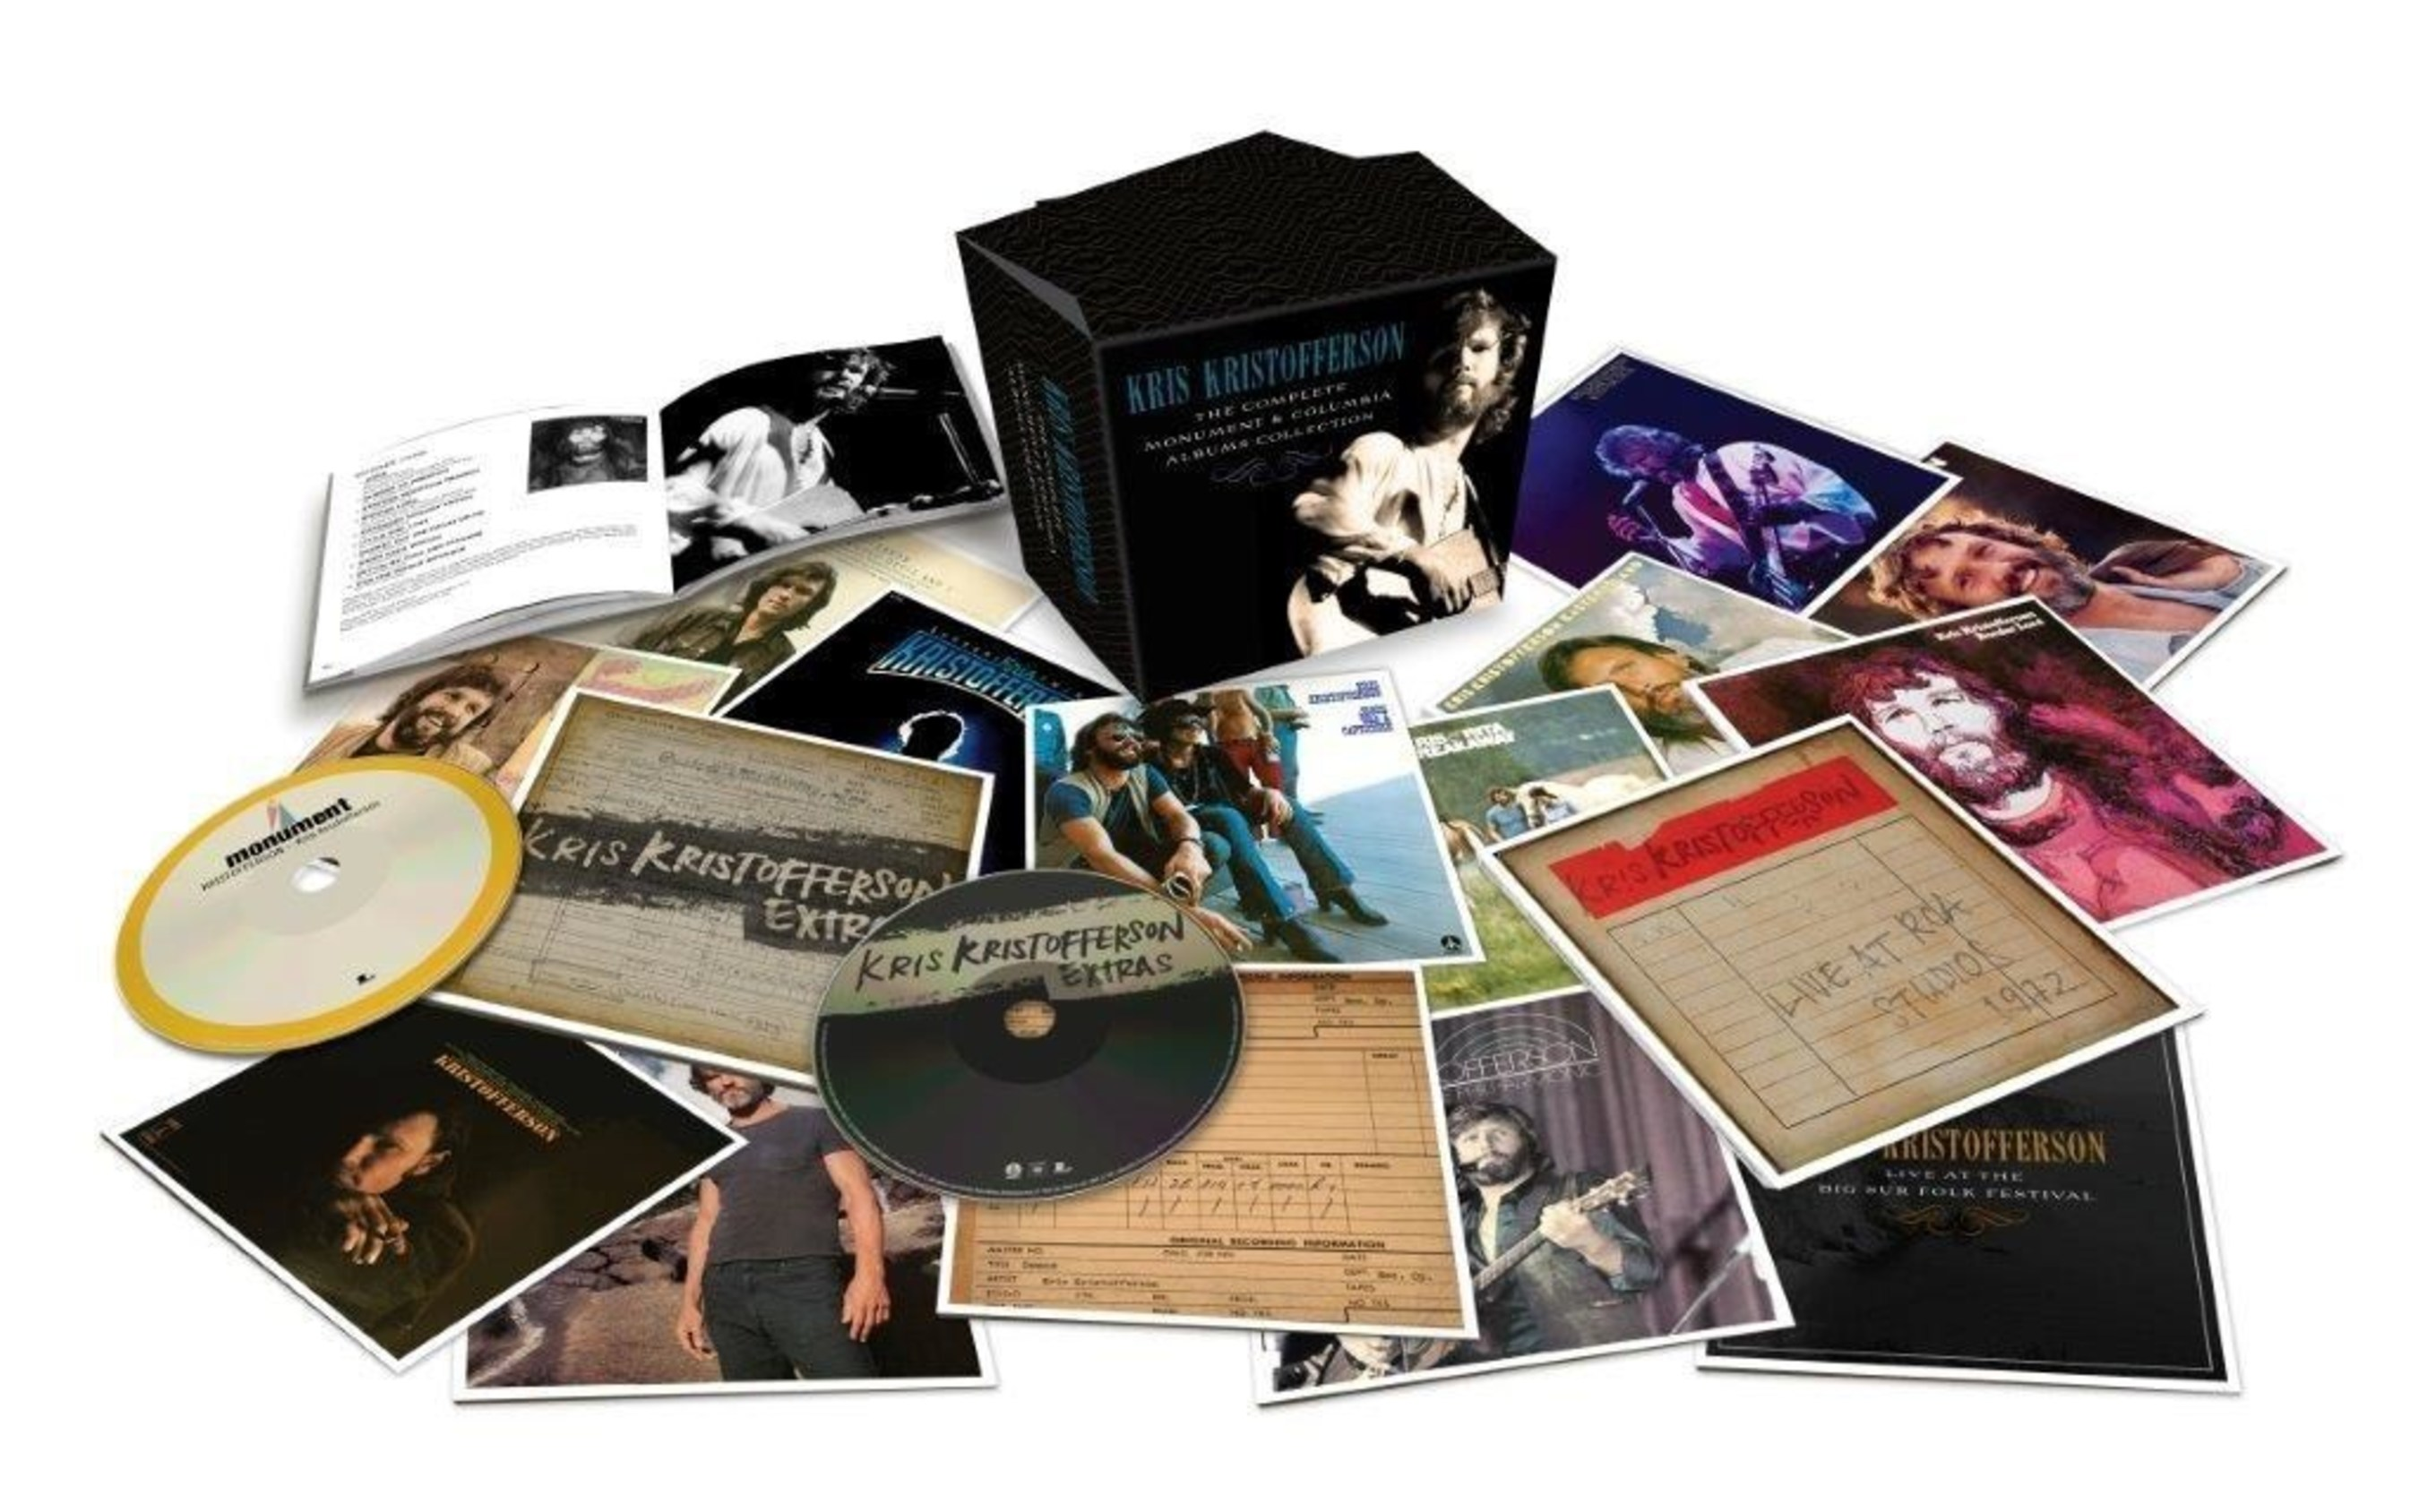 Legacy Recordings Celebrates Kris Kristofferson's 80th Birthday with Release of The Complete Monument & Columbia Album Collection on Friday, June 10